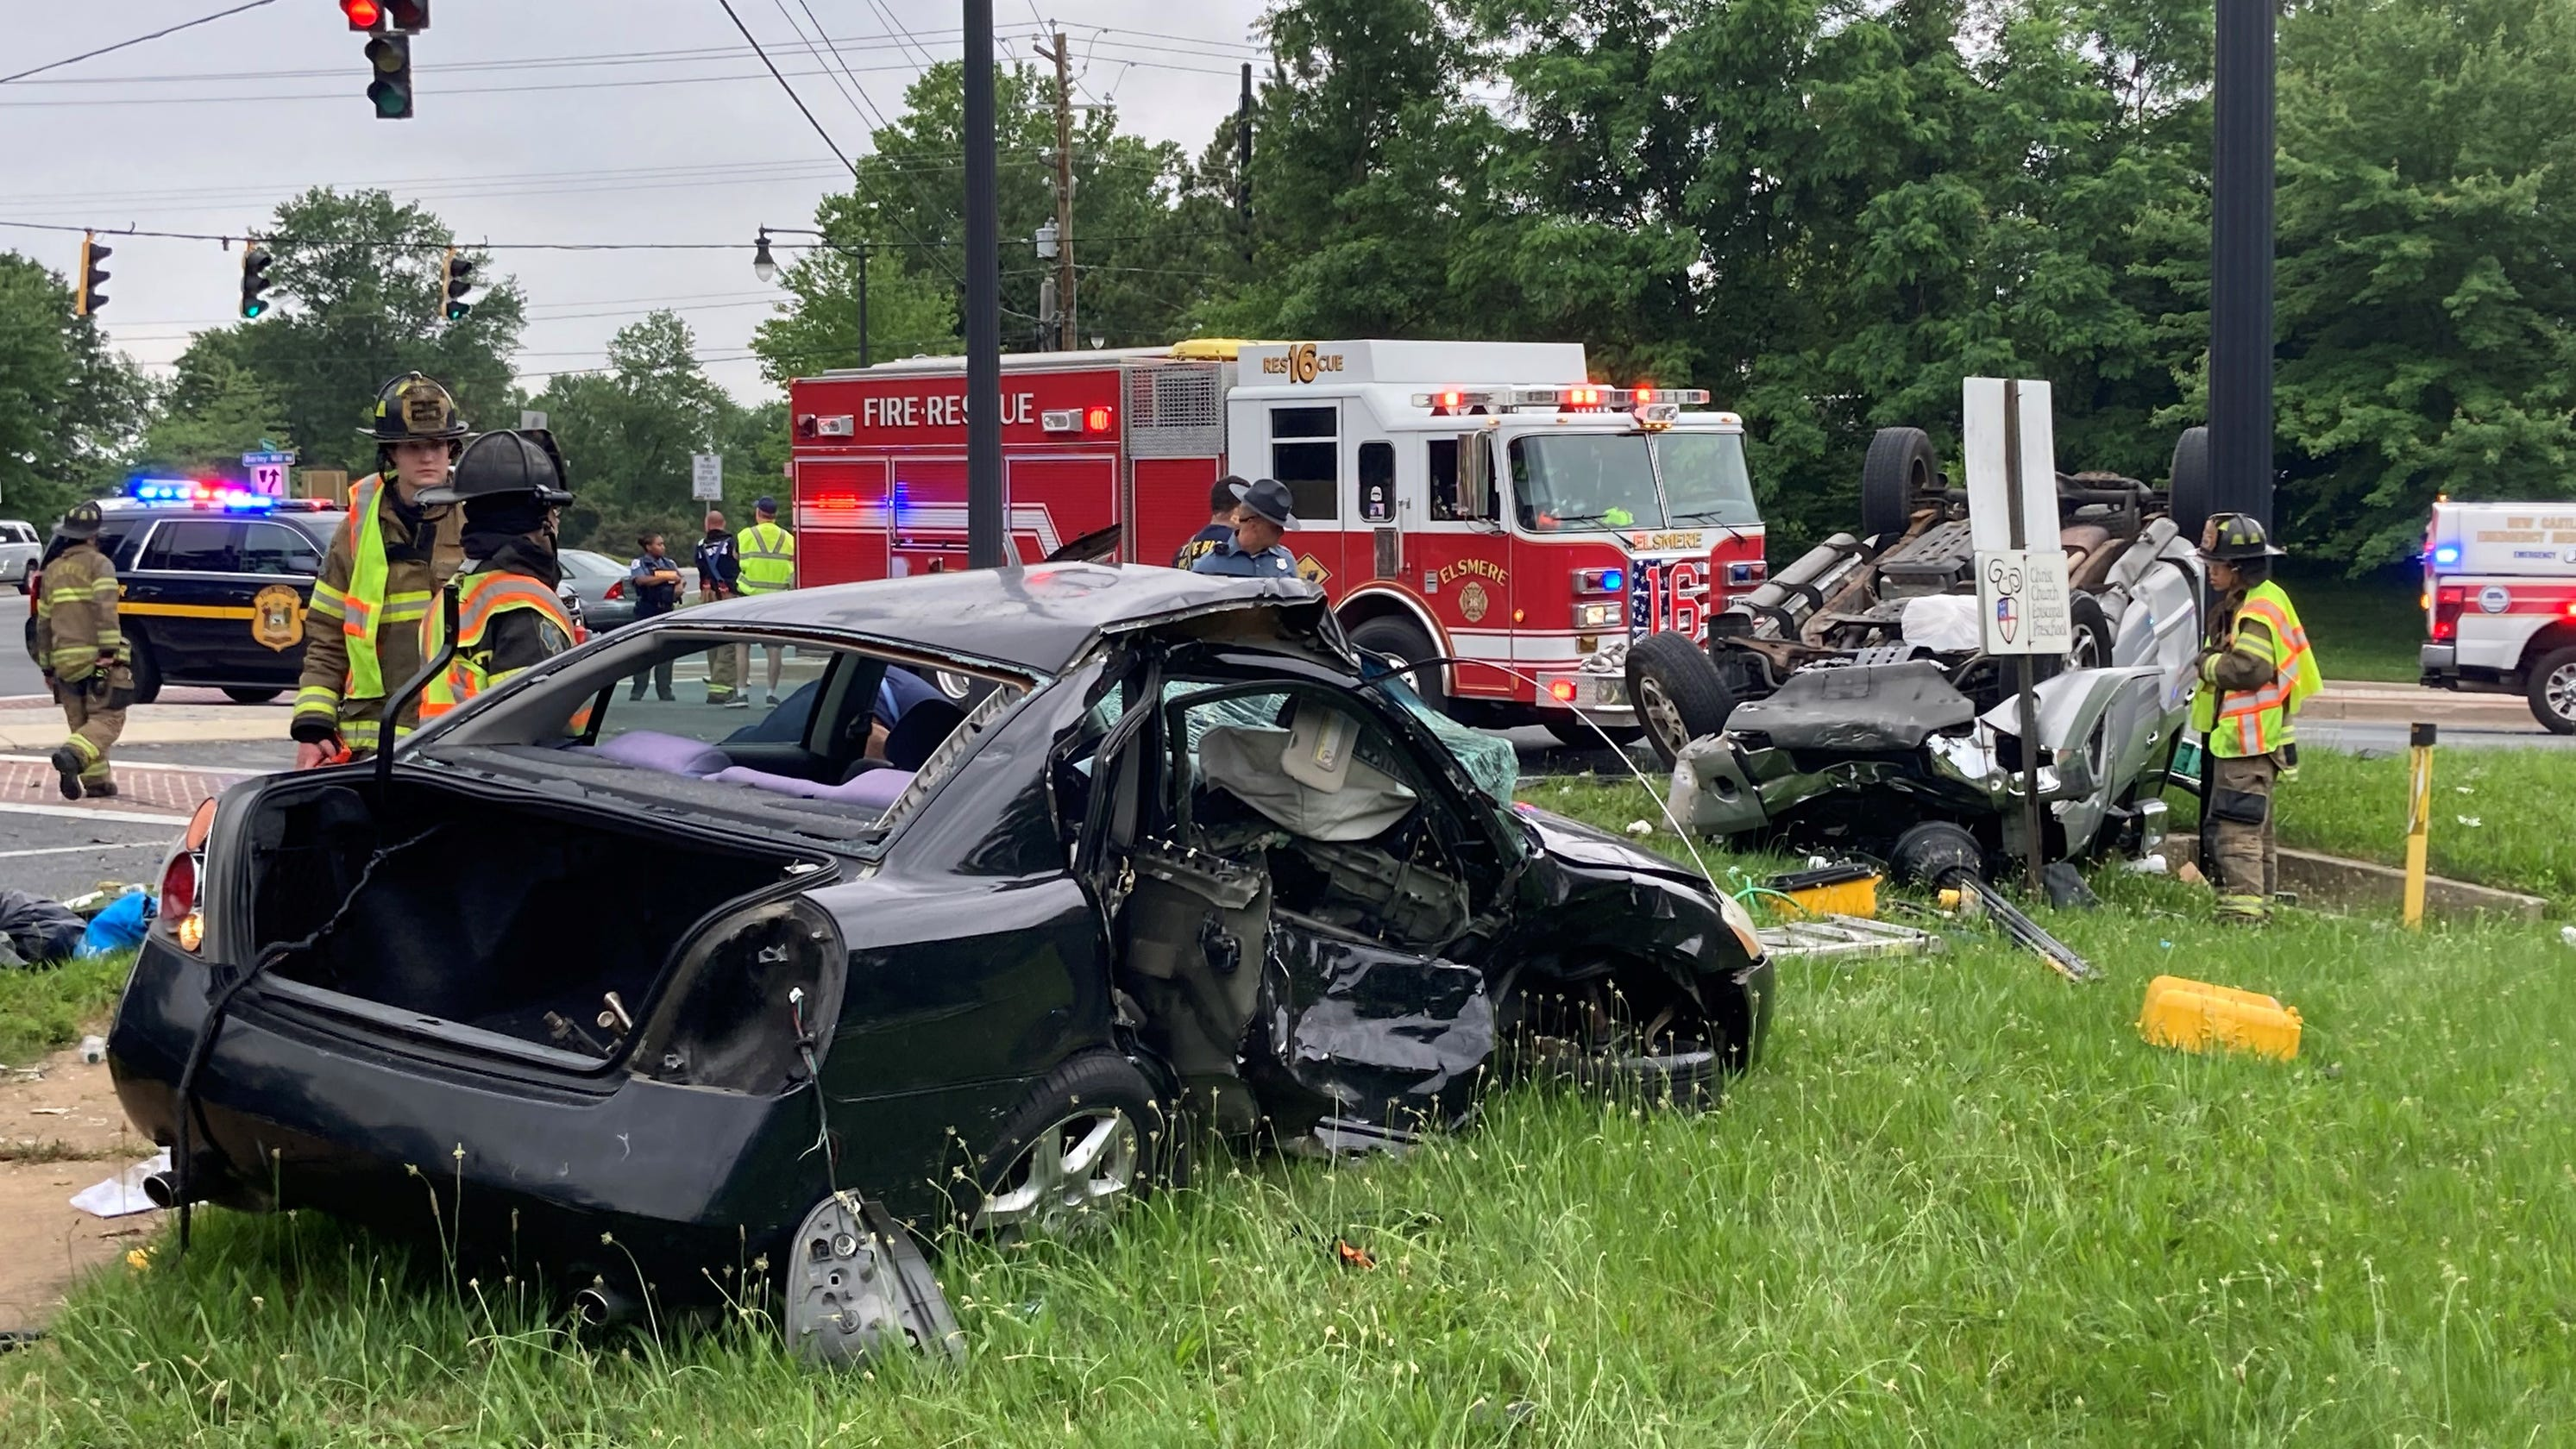 37-year-old Middletown woman killed in intersection crash near Greenville early Sunday